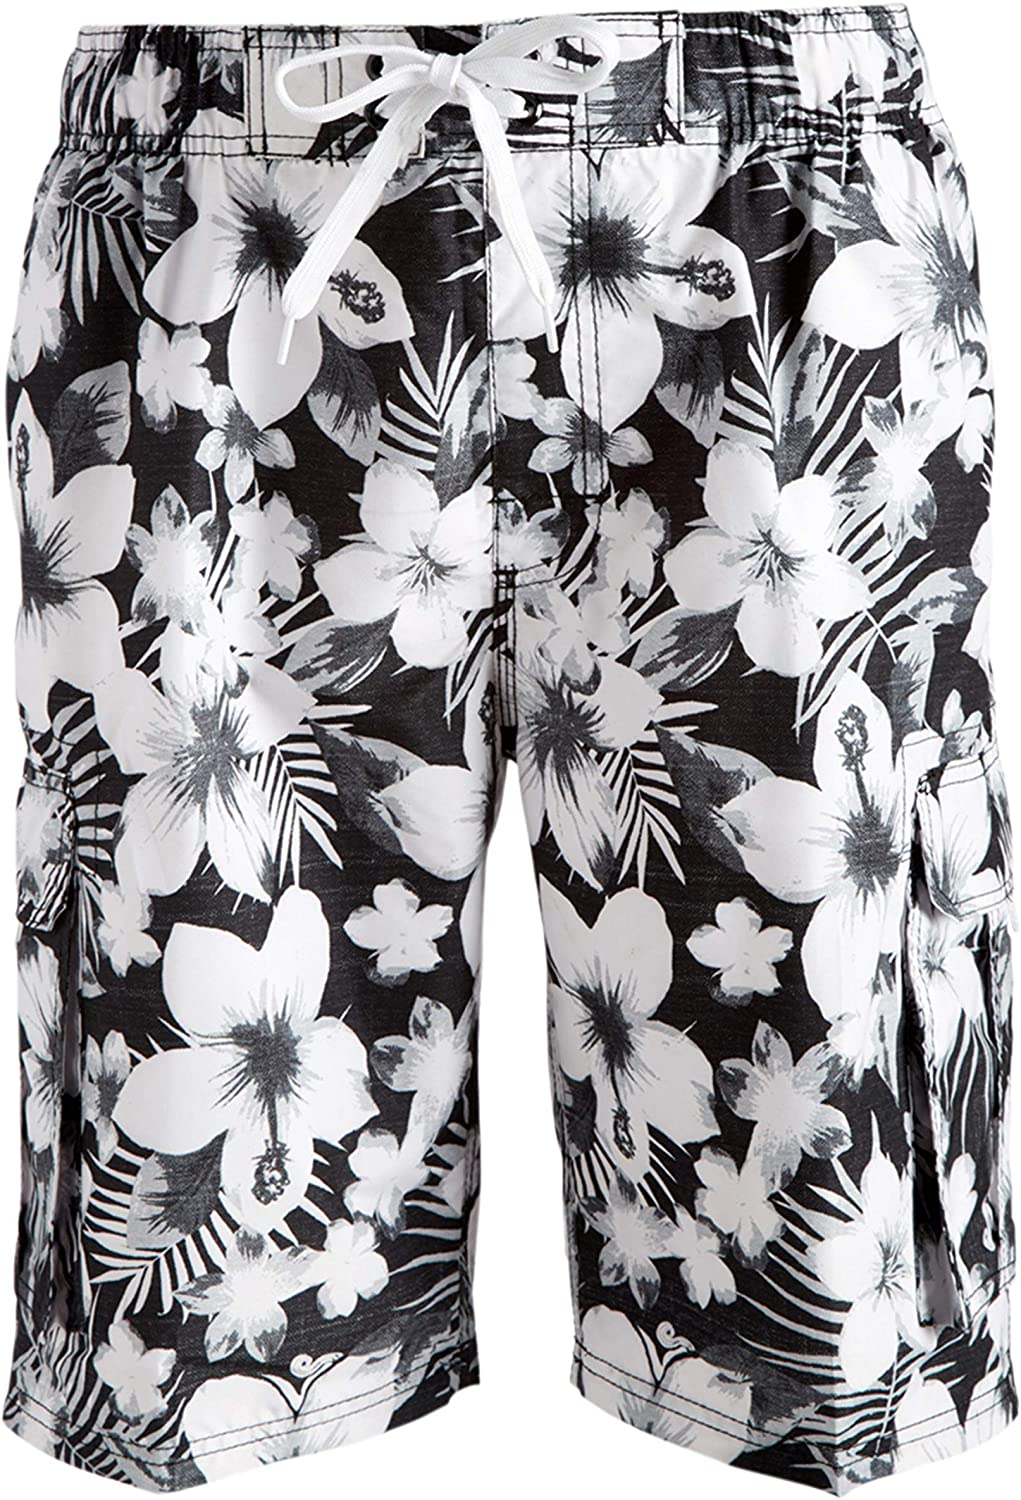 Kanu Surf Indianapolis Mall Men's Riviera Swim Regular Sizes New products world's highest quality popular Trunks Extended